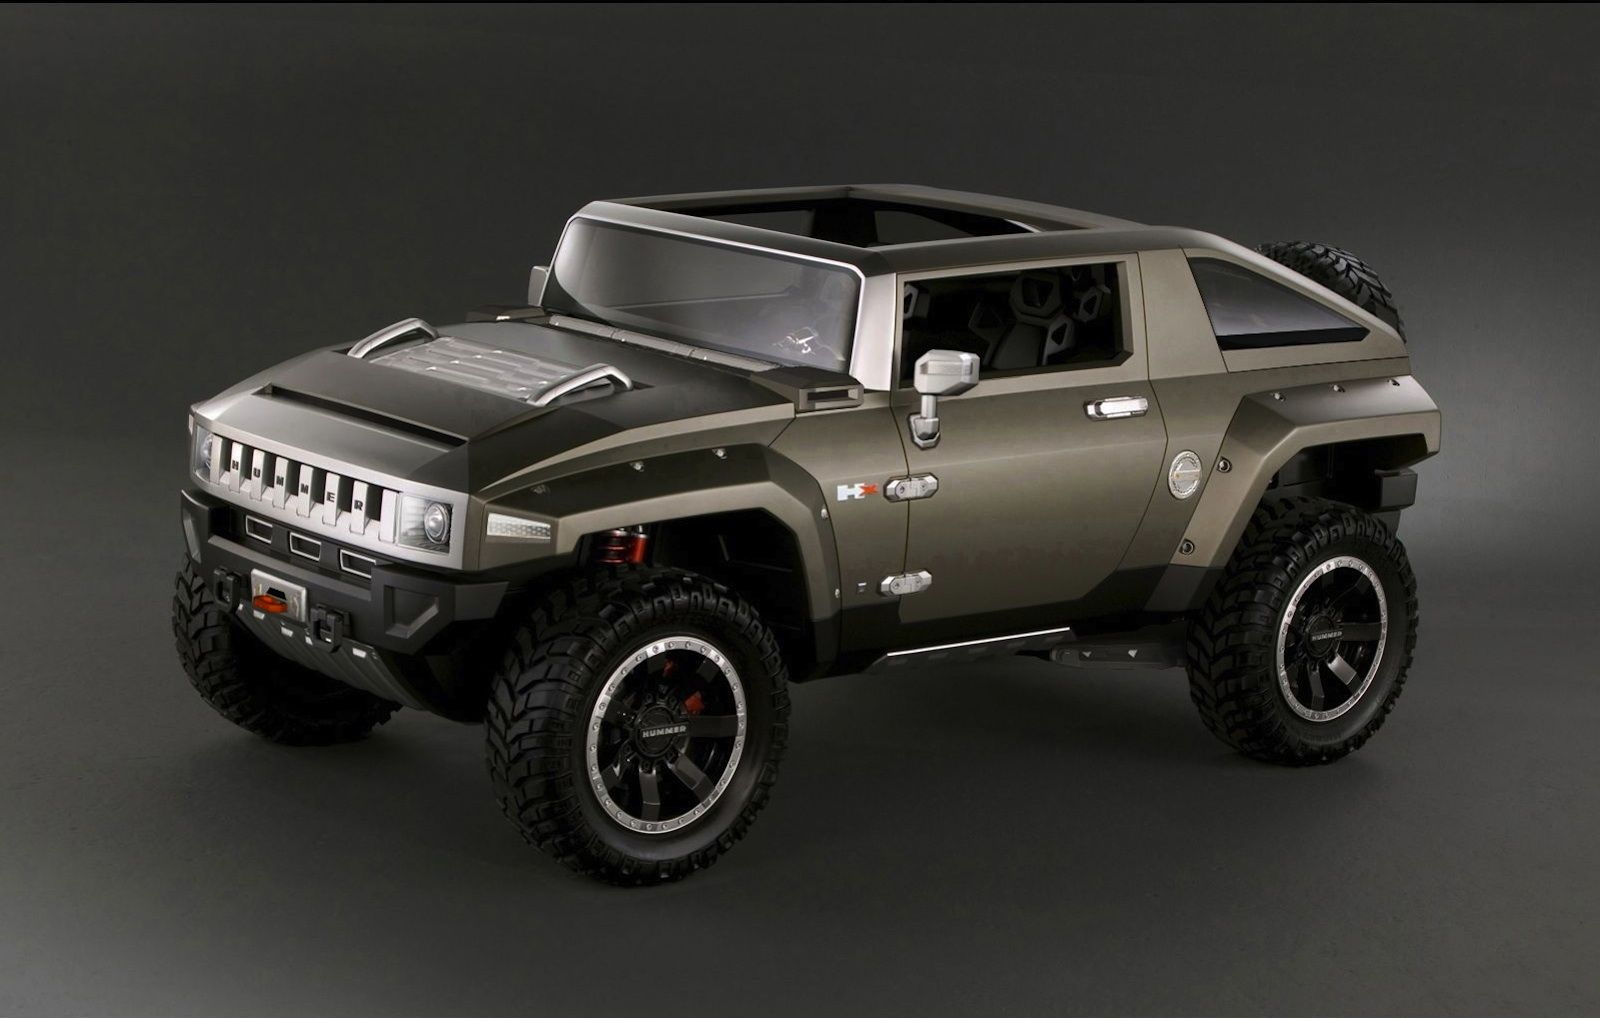 Gmc May Get An Suv That Looks Like A Hummer To Rival Jeep Wrangler